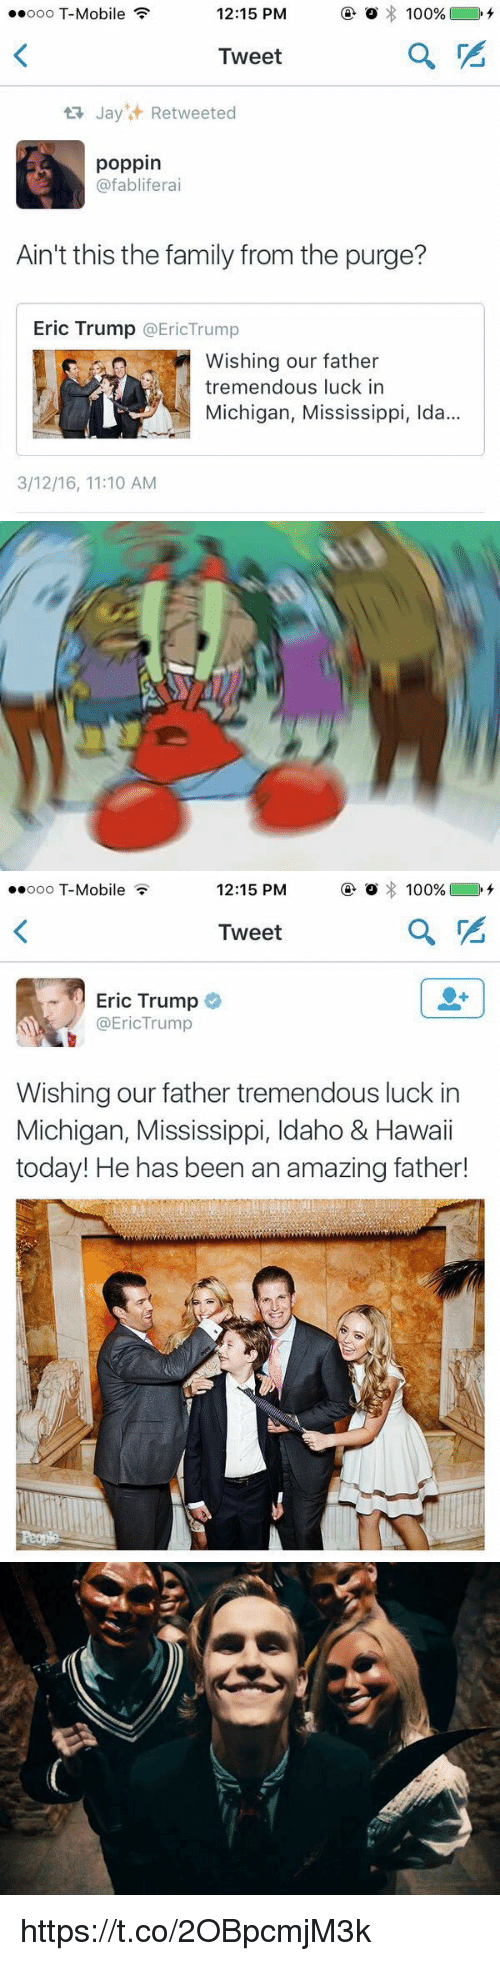 The Purge: 12:15 PM  o 100%  ooo T-Mobile  Tweet  ta Jay Retweeted  poppin  @fabliferai  Ain't this the family from the purge?  Eric Trump  EricTrump  Wishing our father  tremendous luck in  Michigan, Mississippi, Ida...  3/12/16, 11:10 AM   12:15 PM  o 100%  ooo T-Mobile  Tweet  Eric Trump  @EricTrump  Wishing our father tremendous luck in  Michigan, Mississippi, Idaho & Hawaii  today! He has been an amazing father!   as https://t.co/2OBpcmjM3k